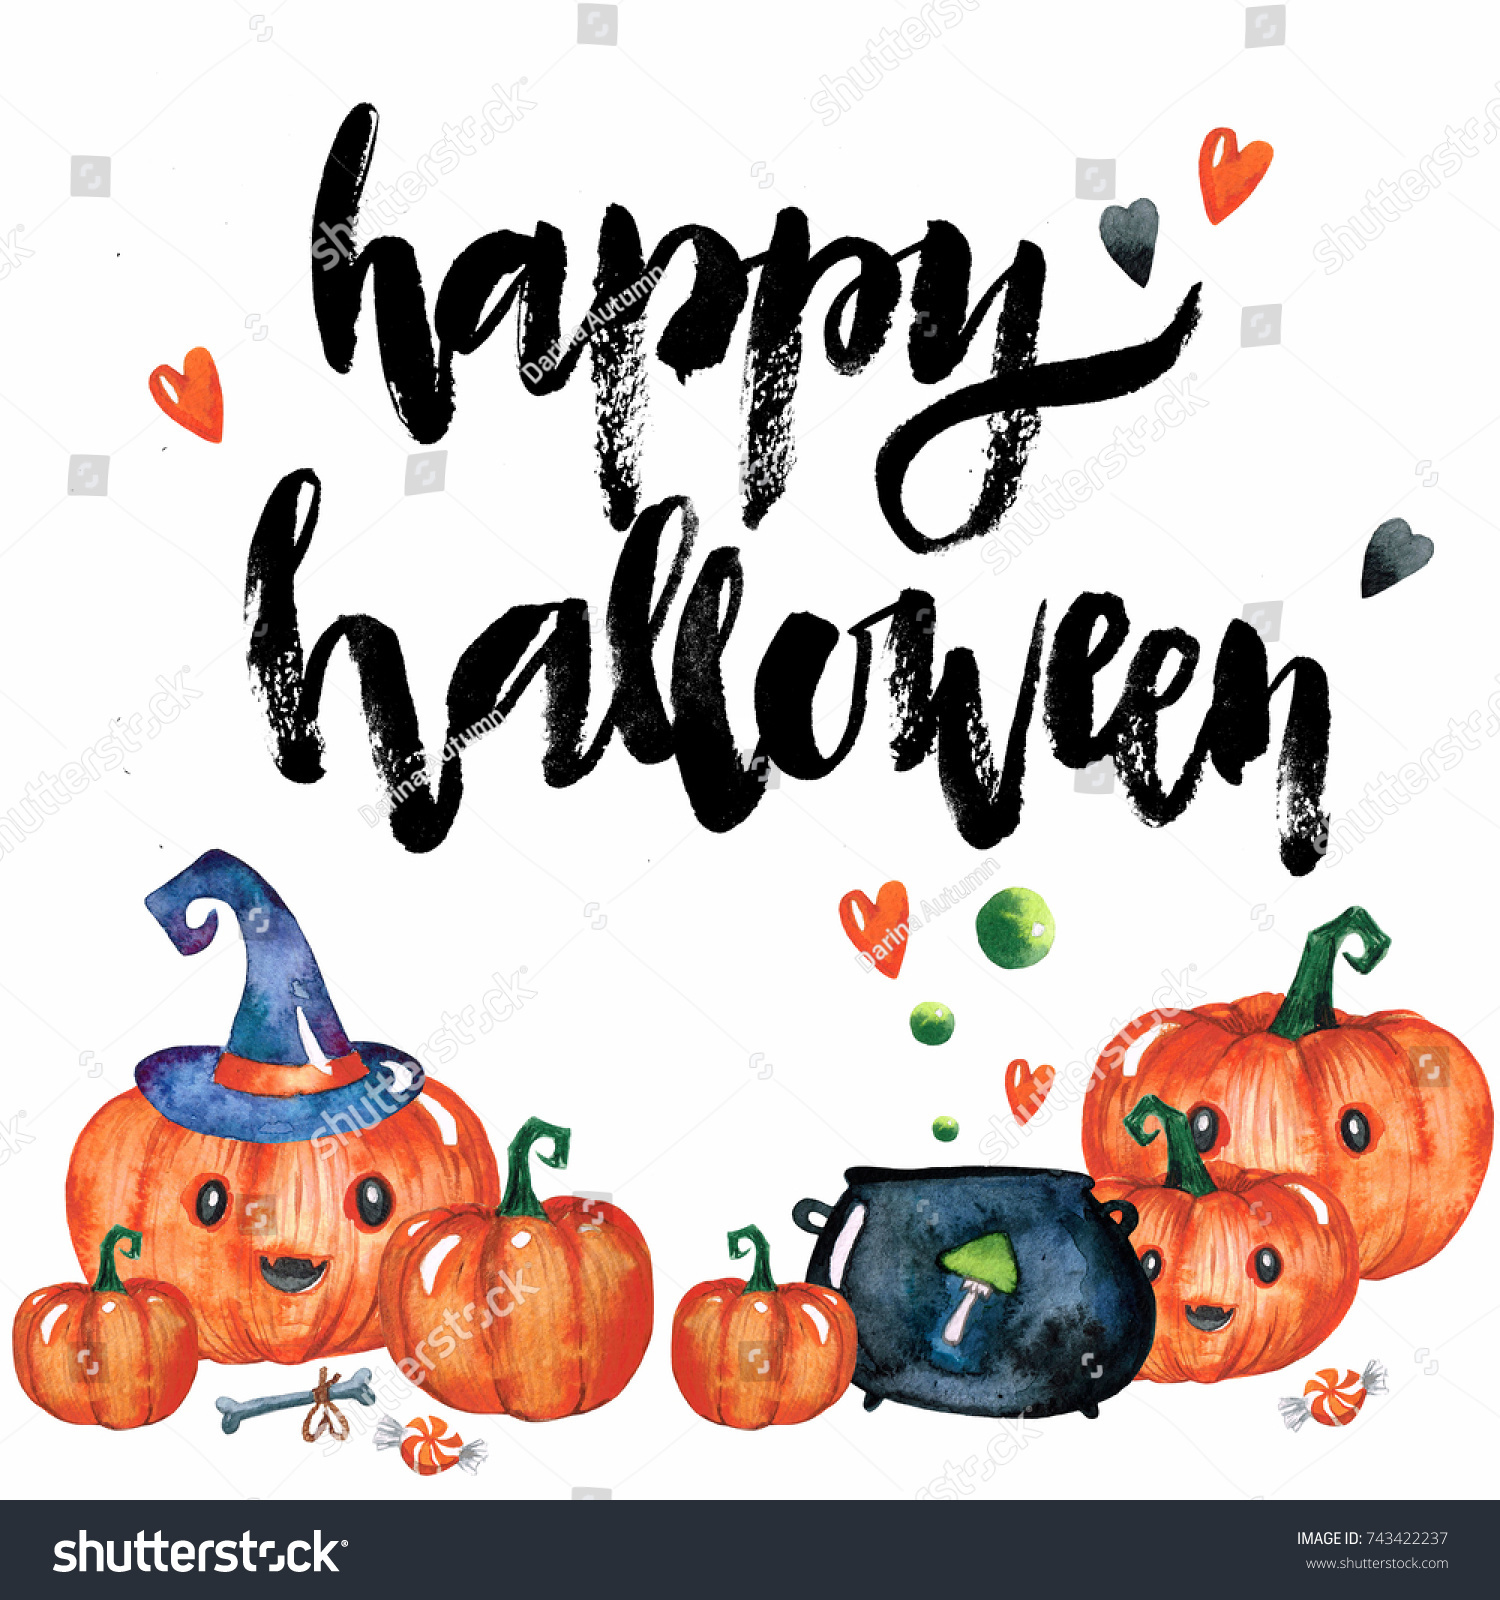 watercolor halloween set on white background stock illustration